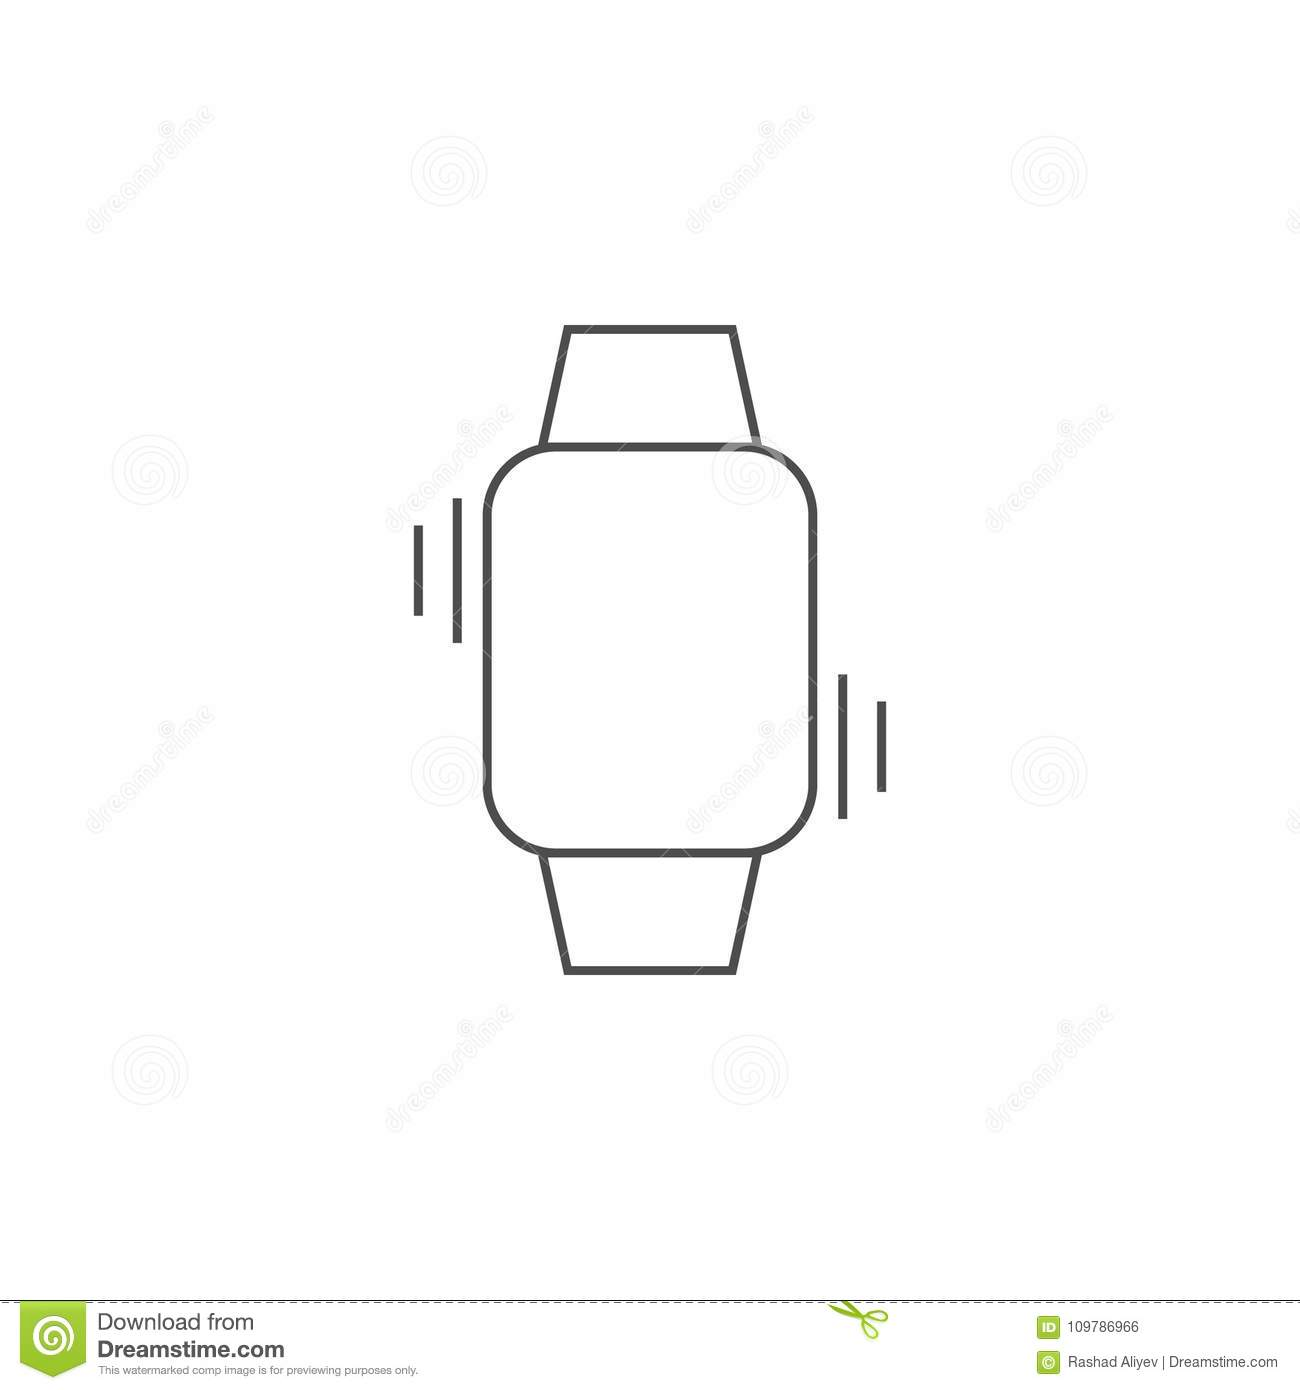 Vibration On A Smart Watch Icon  Element For Mobile Concept